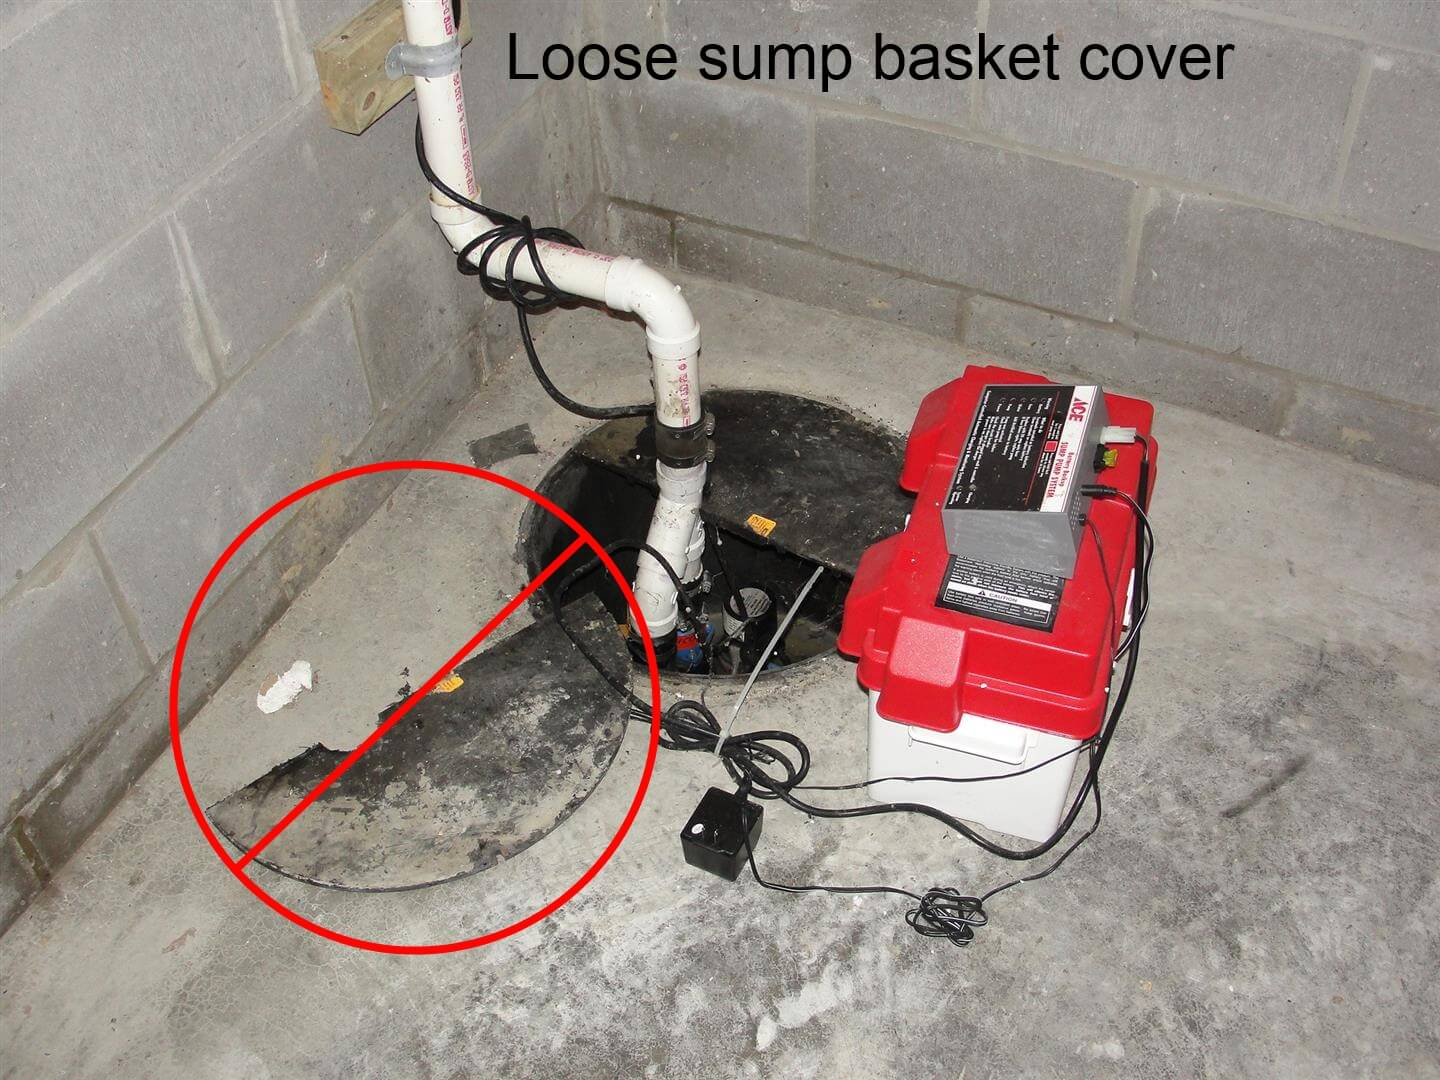 Five Common Sump System Defects Electrical Wiring In The Home Basement And Installing